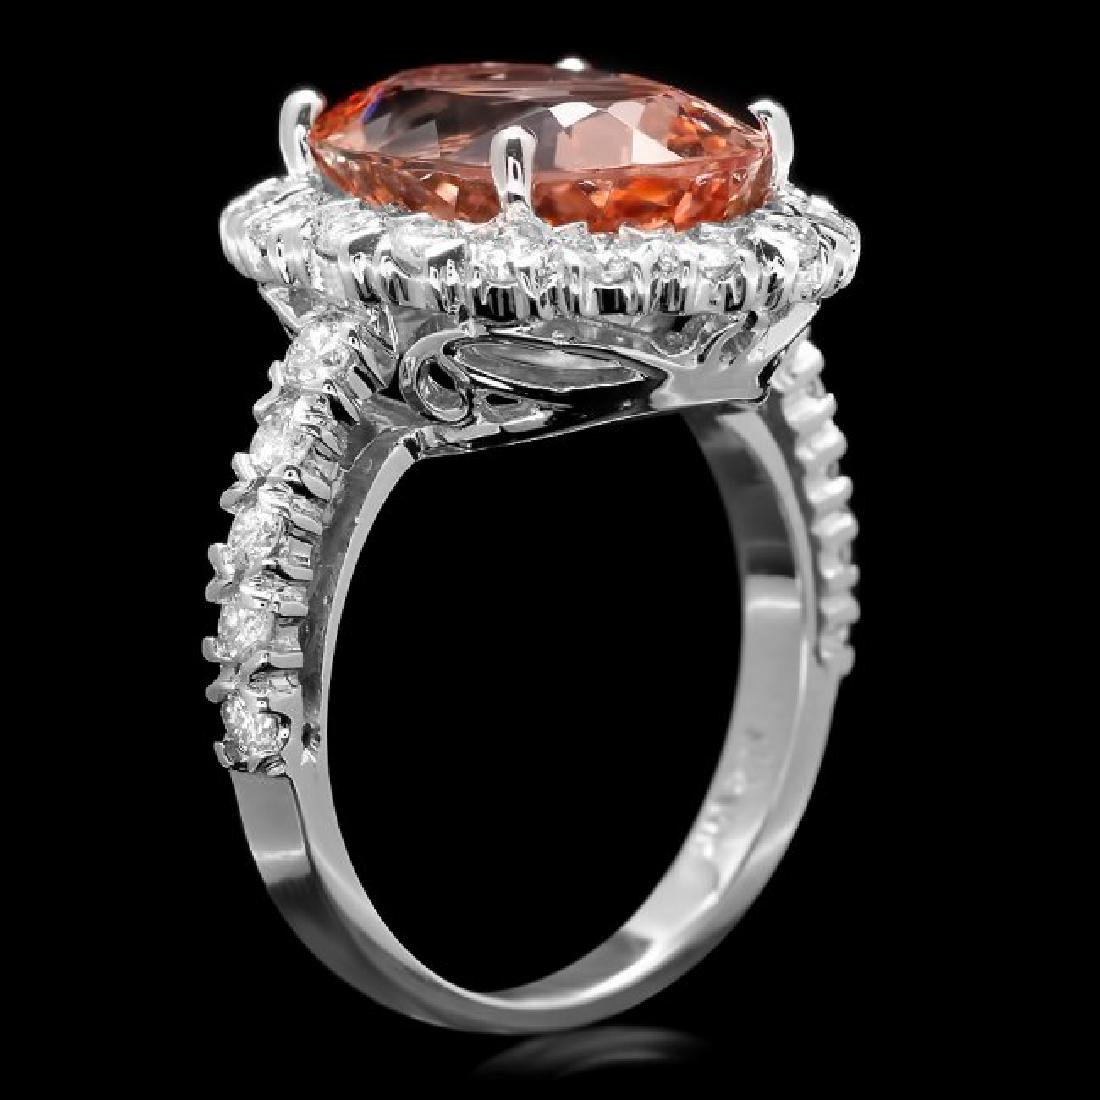 14k Gold 7.25ct Morganite 1.20ct Diamond Ring - 2